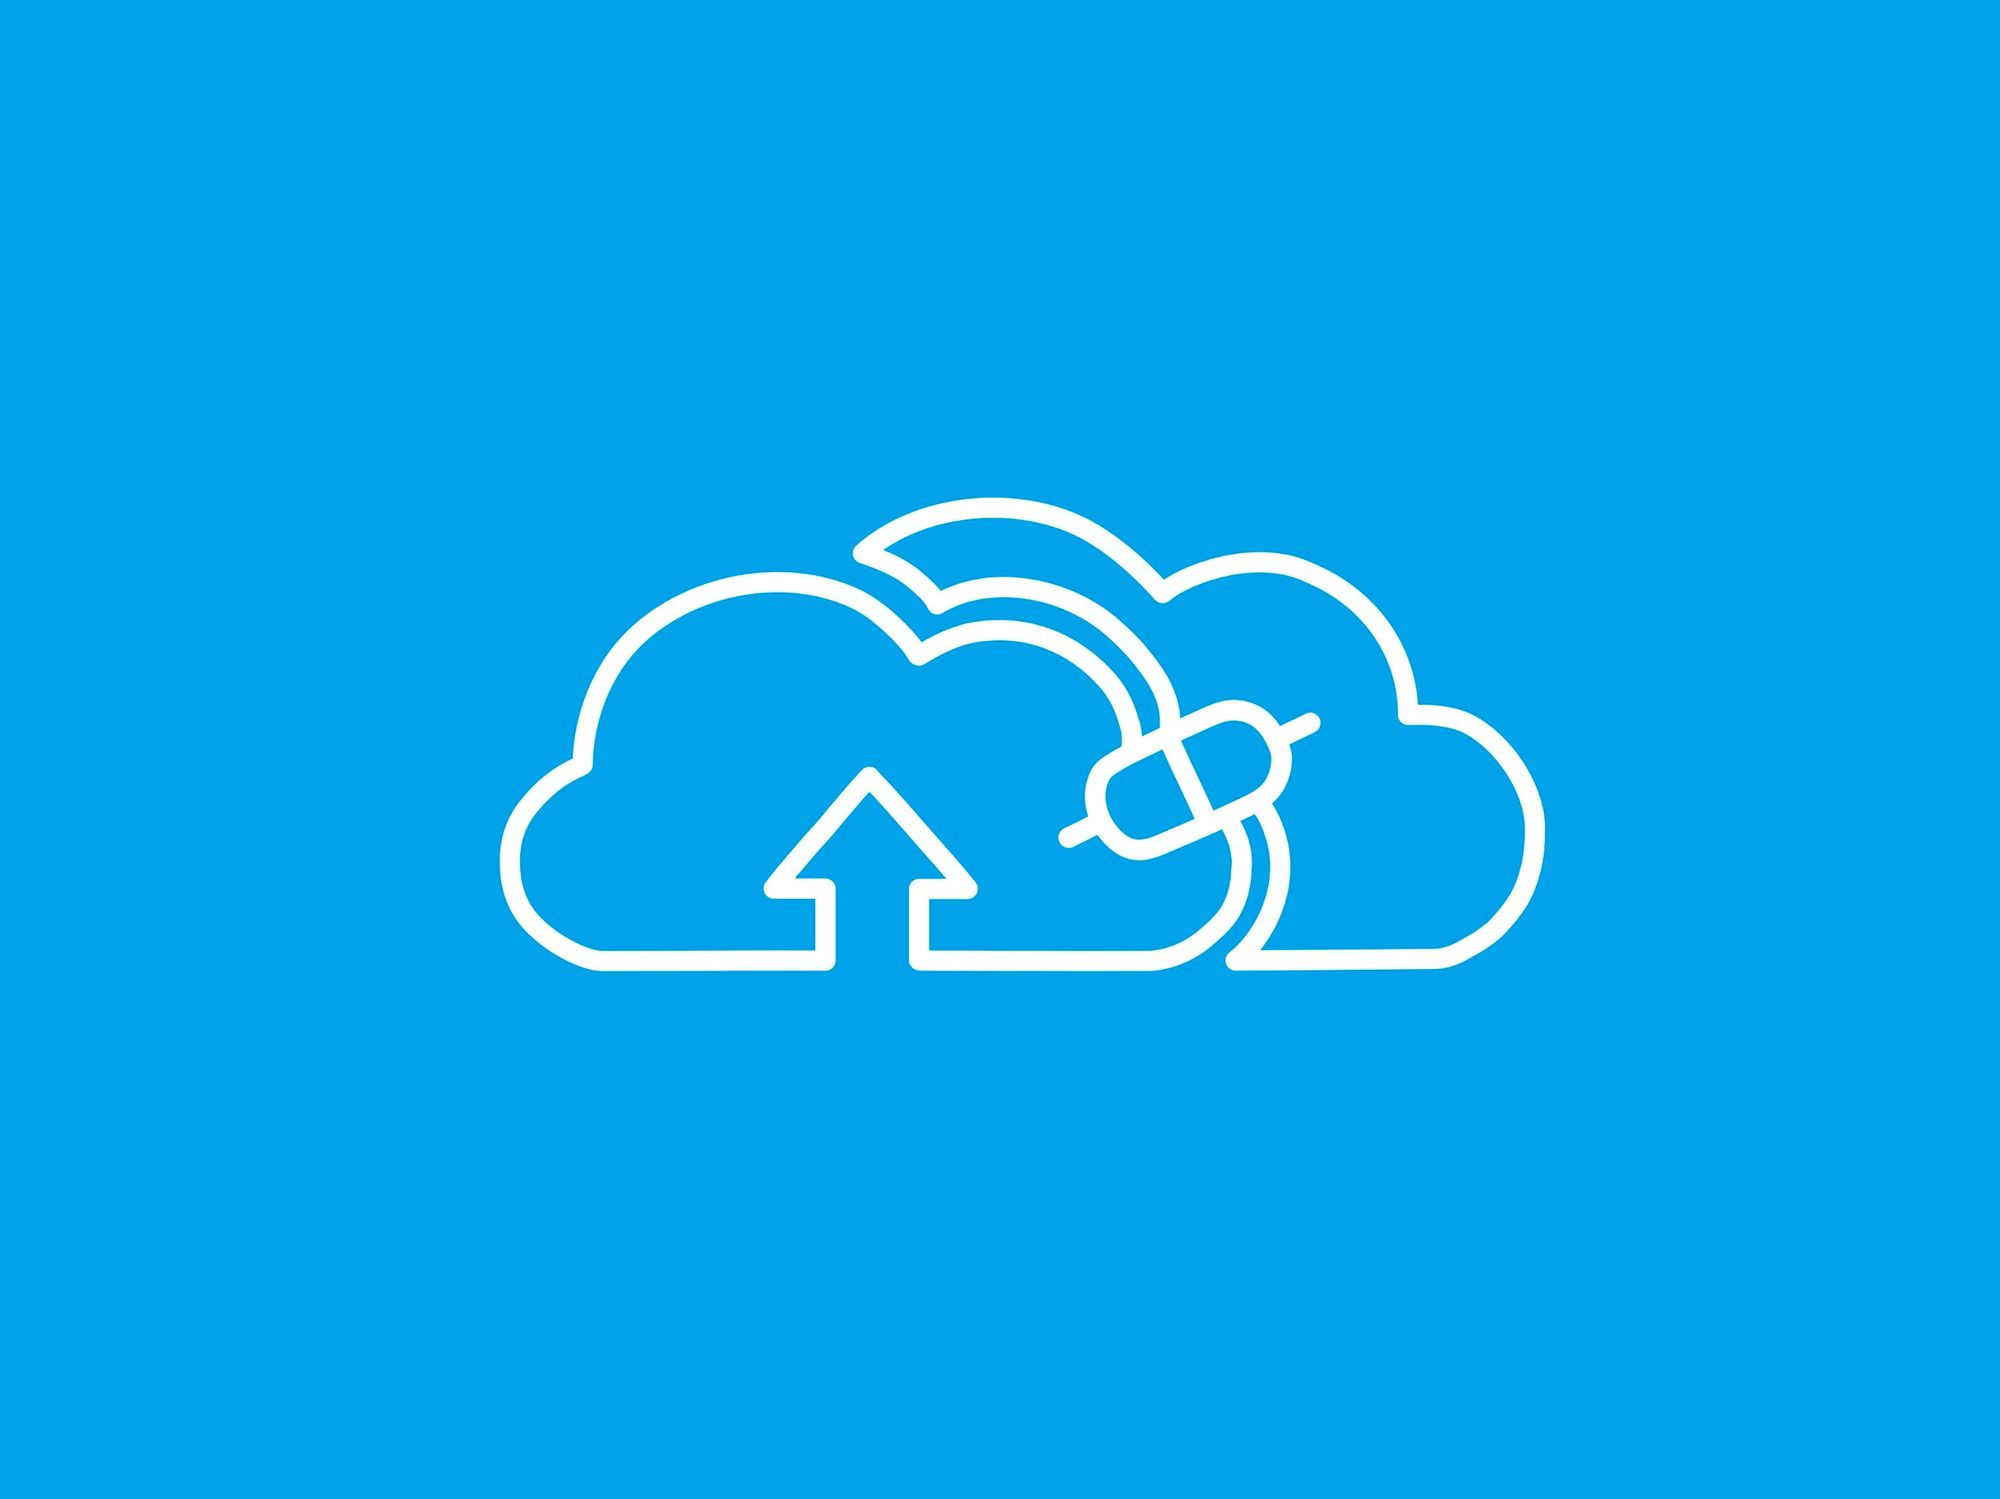 Integrating OT clouds with IT systems such as SAP AINs